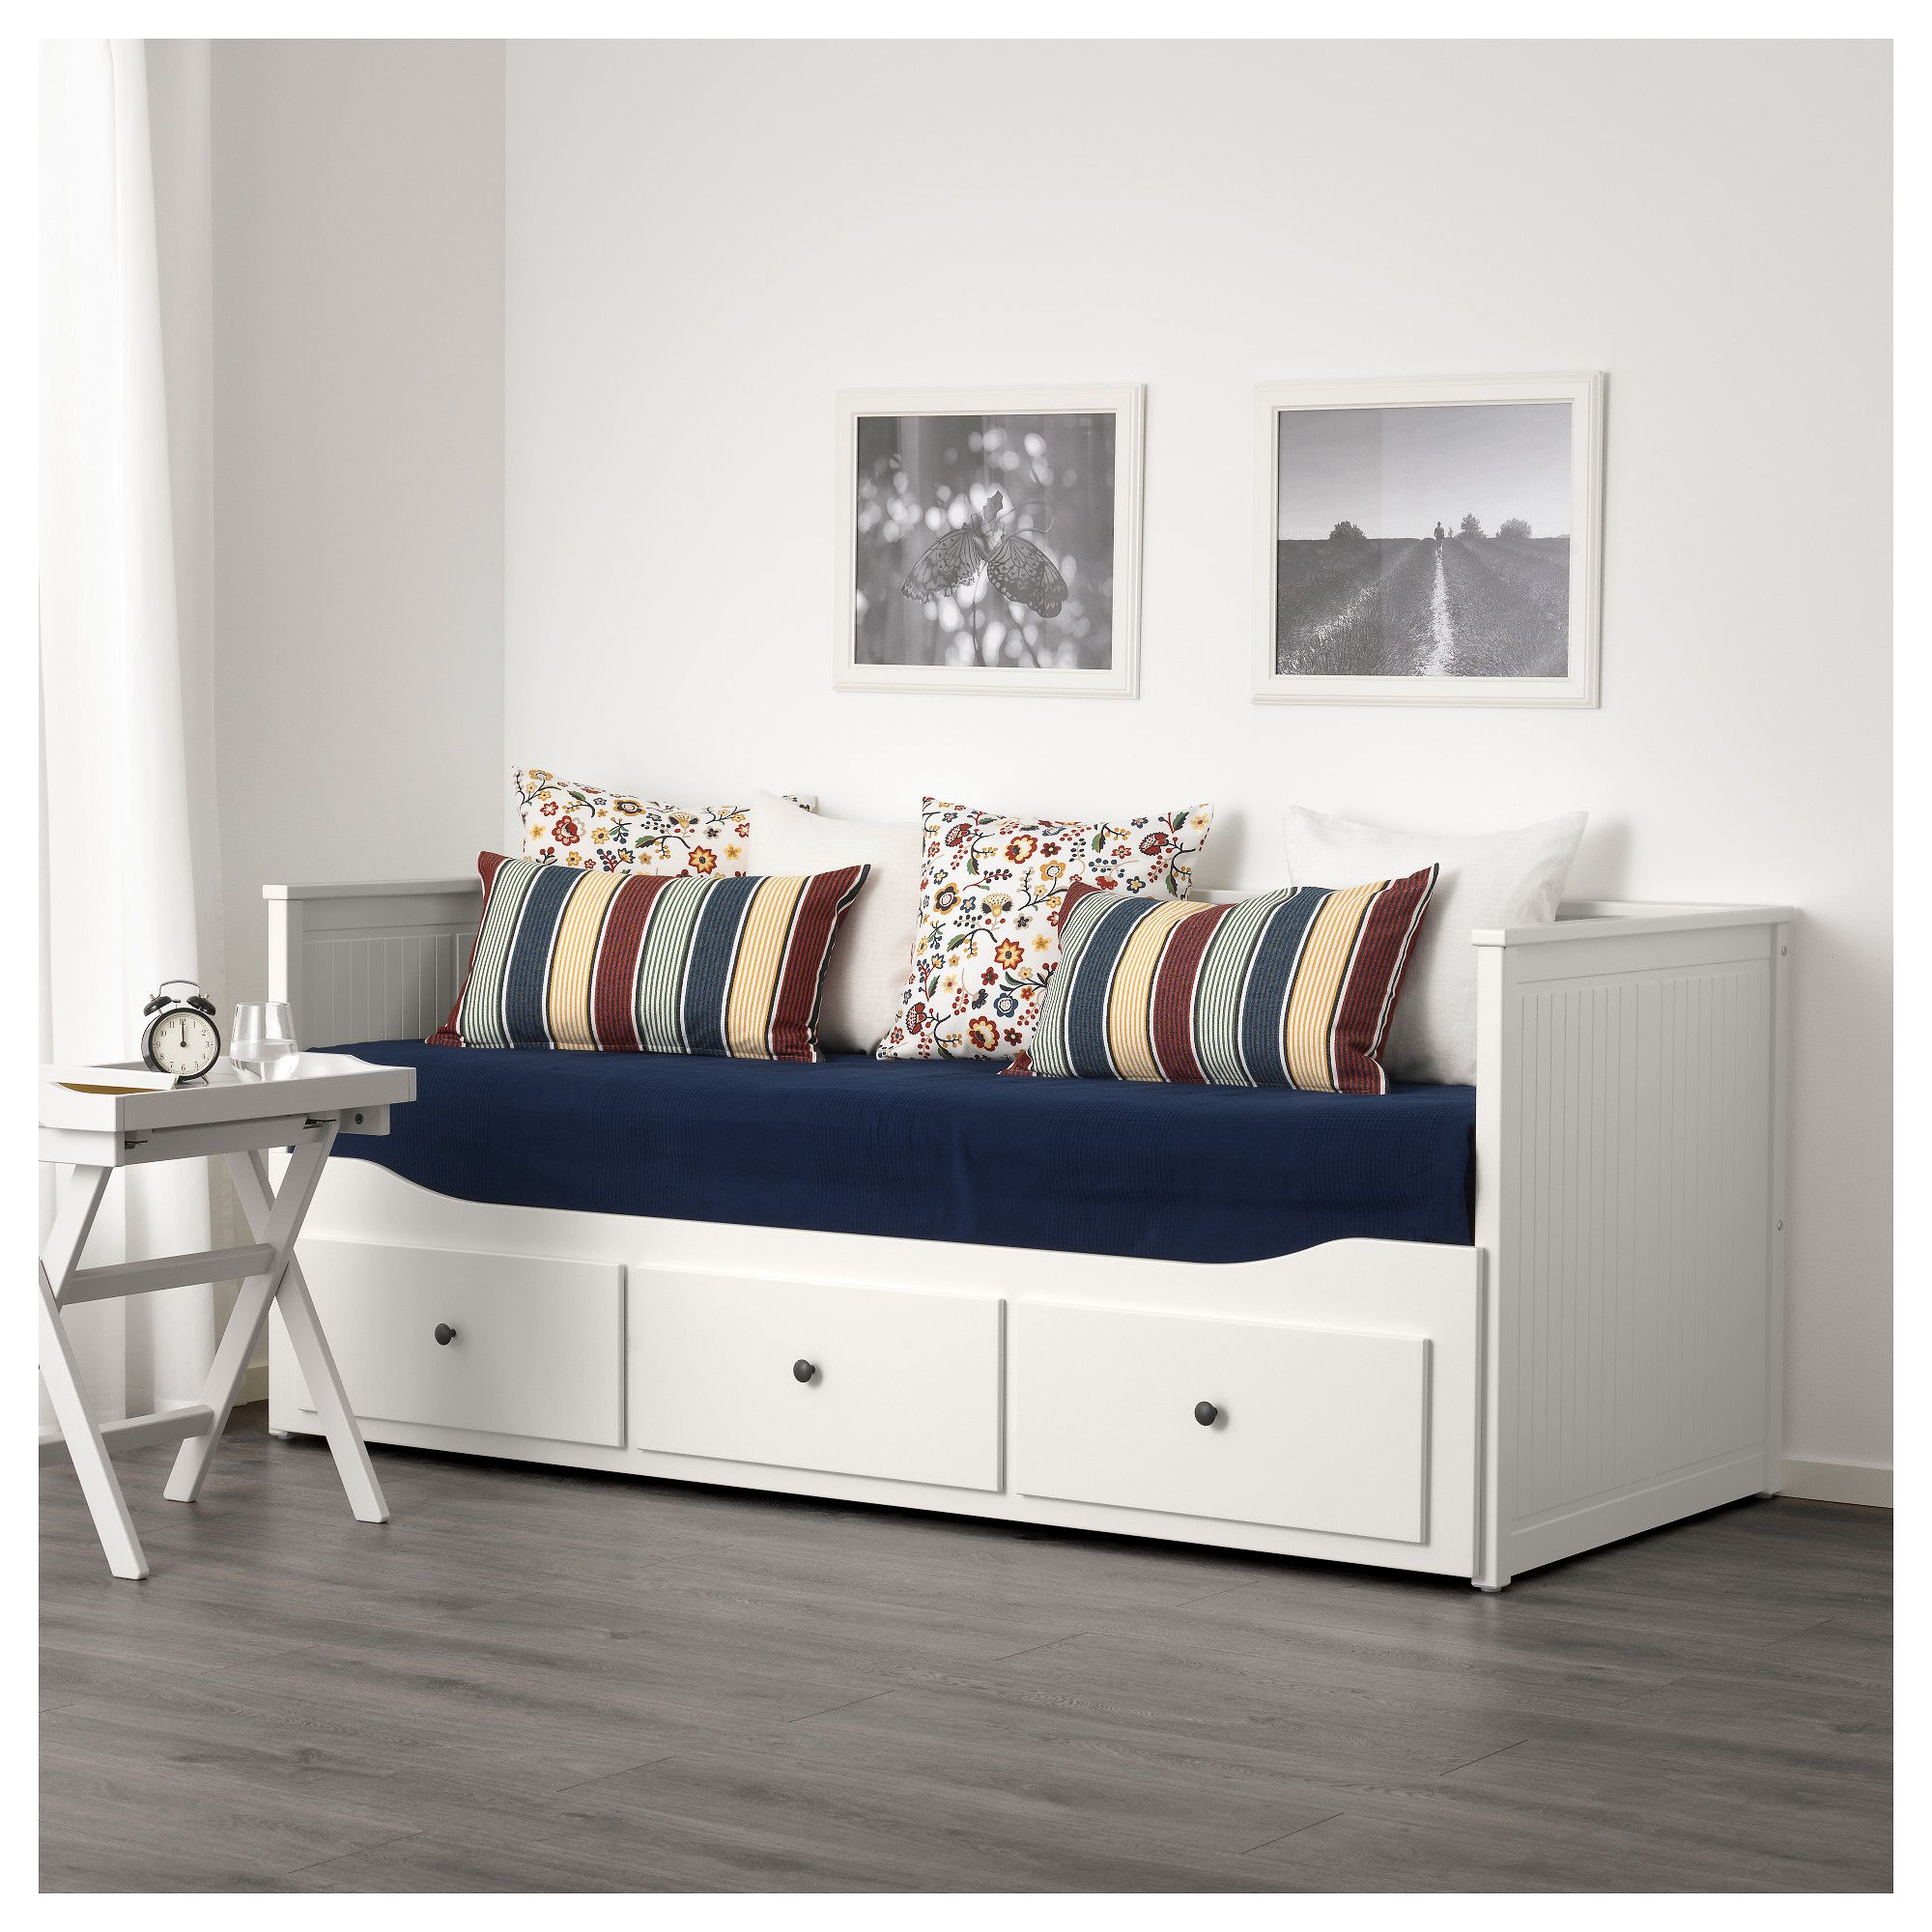 HEMNES Daybed frame with 3 drawers white 80x200 cm